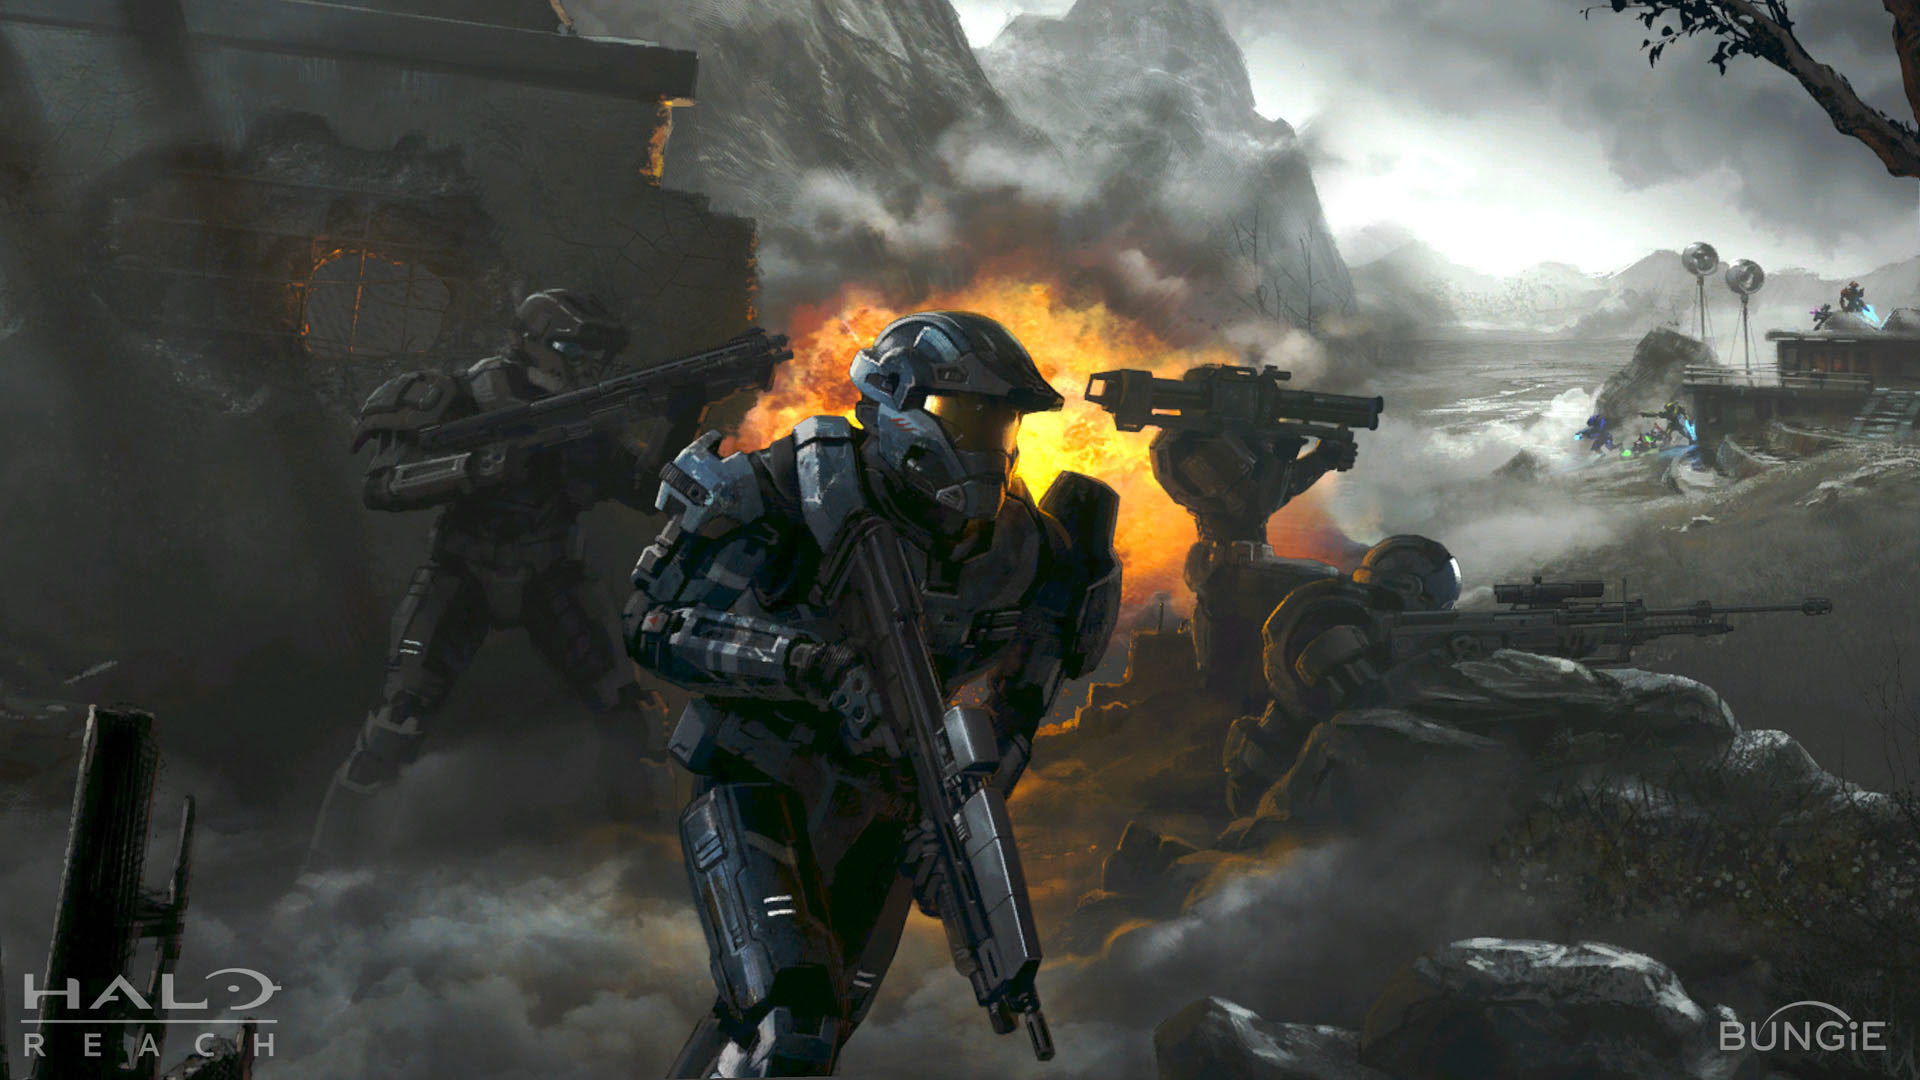 Halo Concept Art by Isaac Hannaford   #70 - Escape The Level